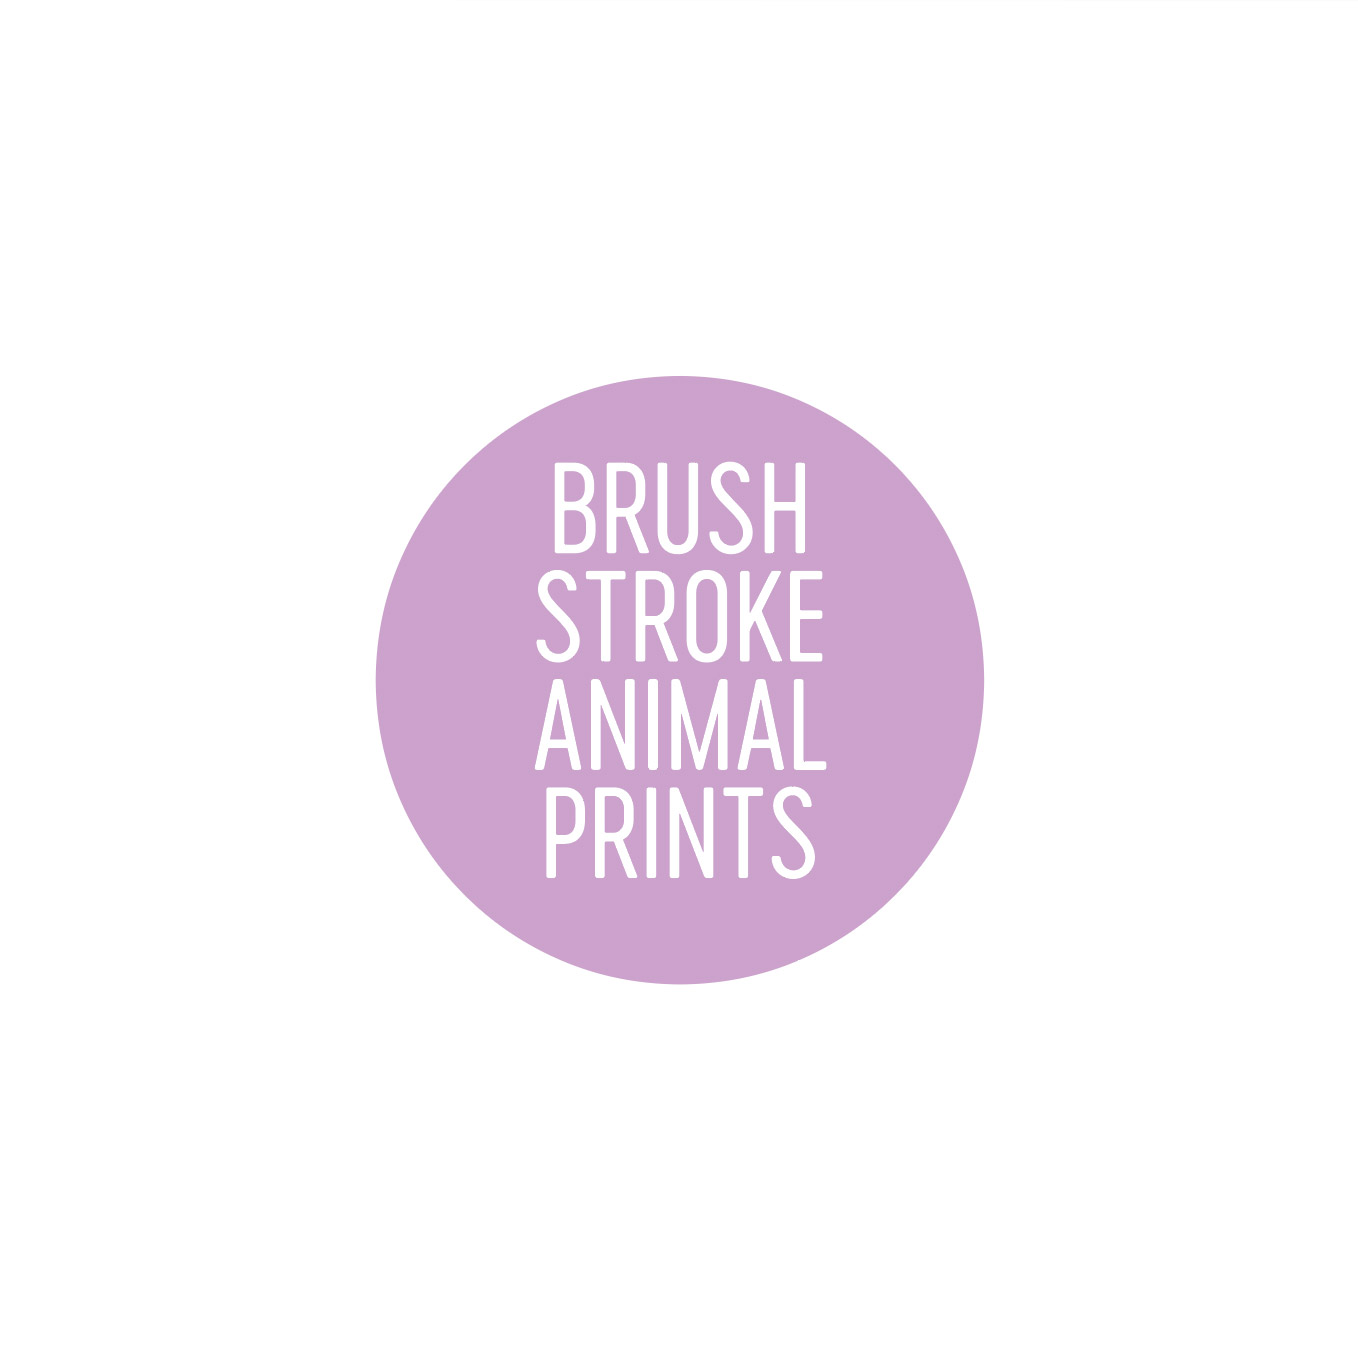 Brush Stroke Animal Prints